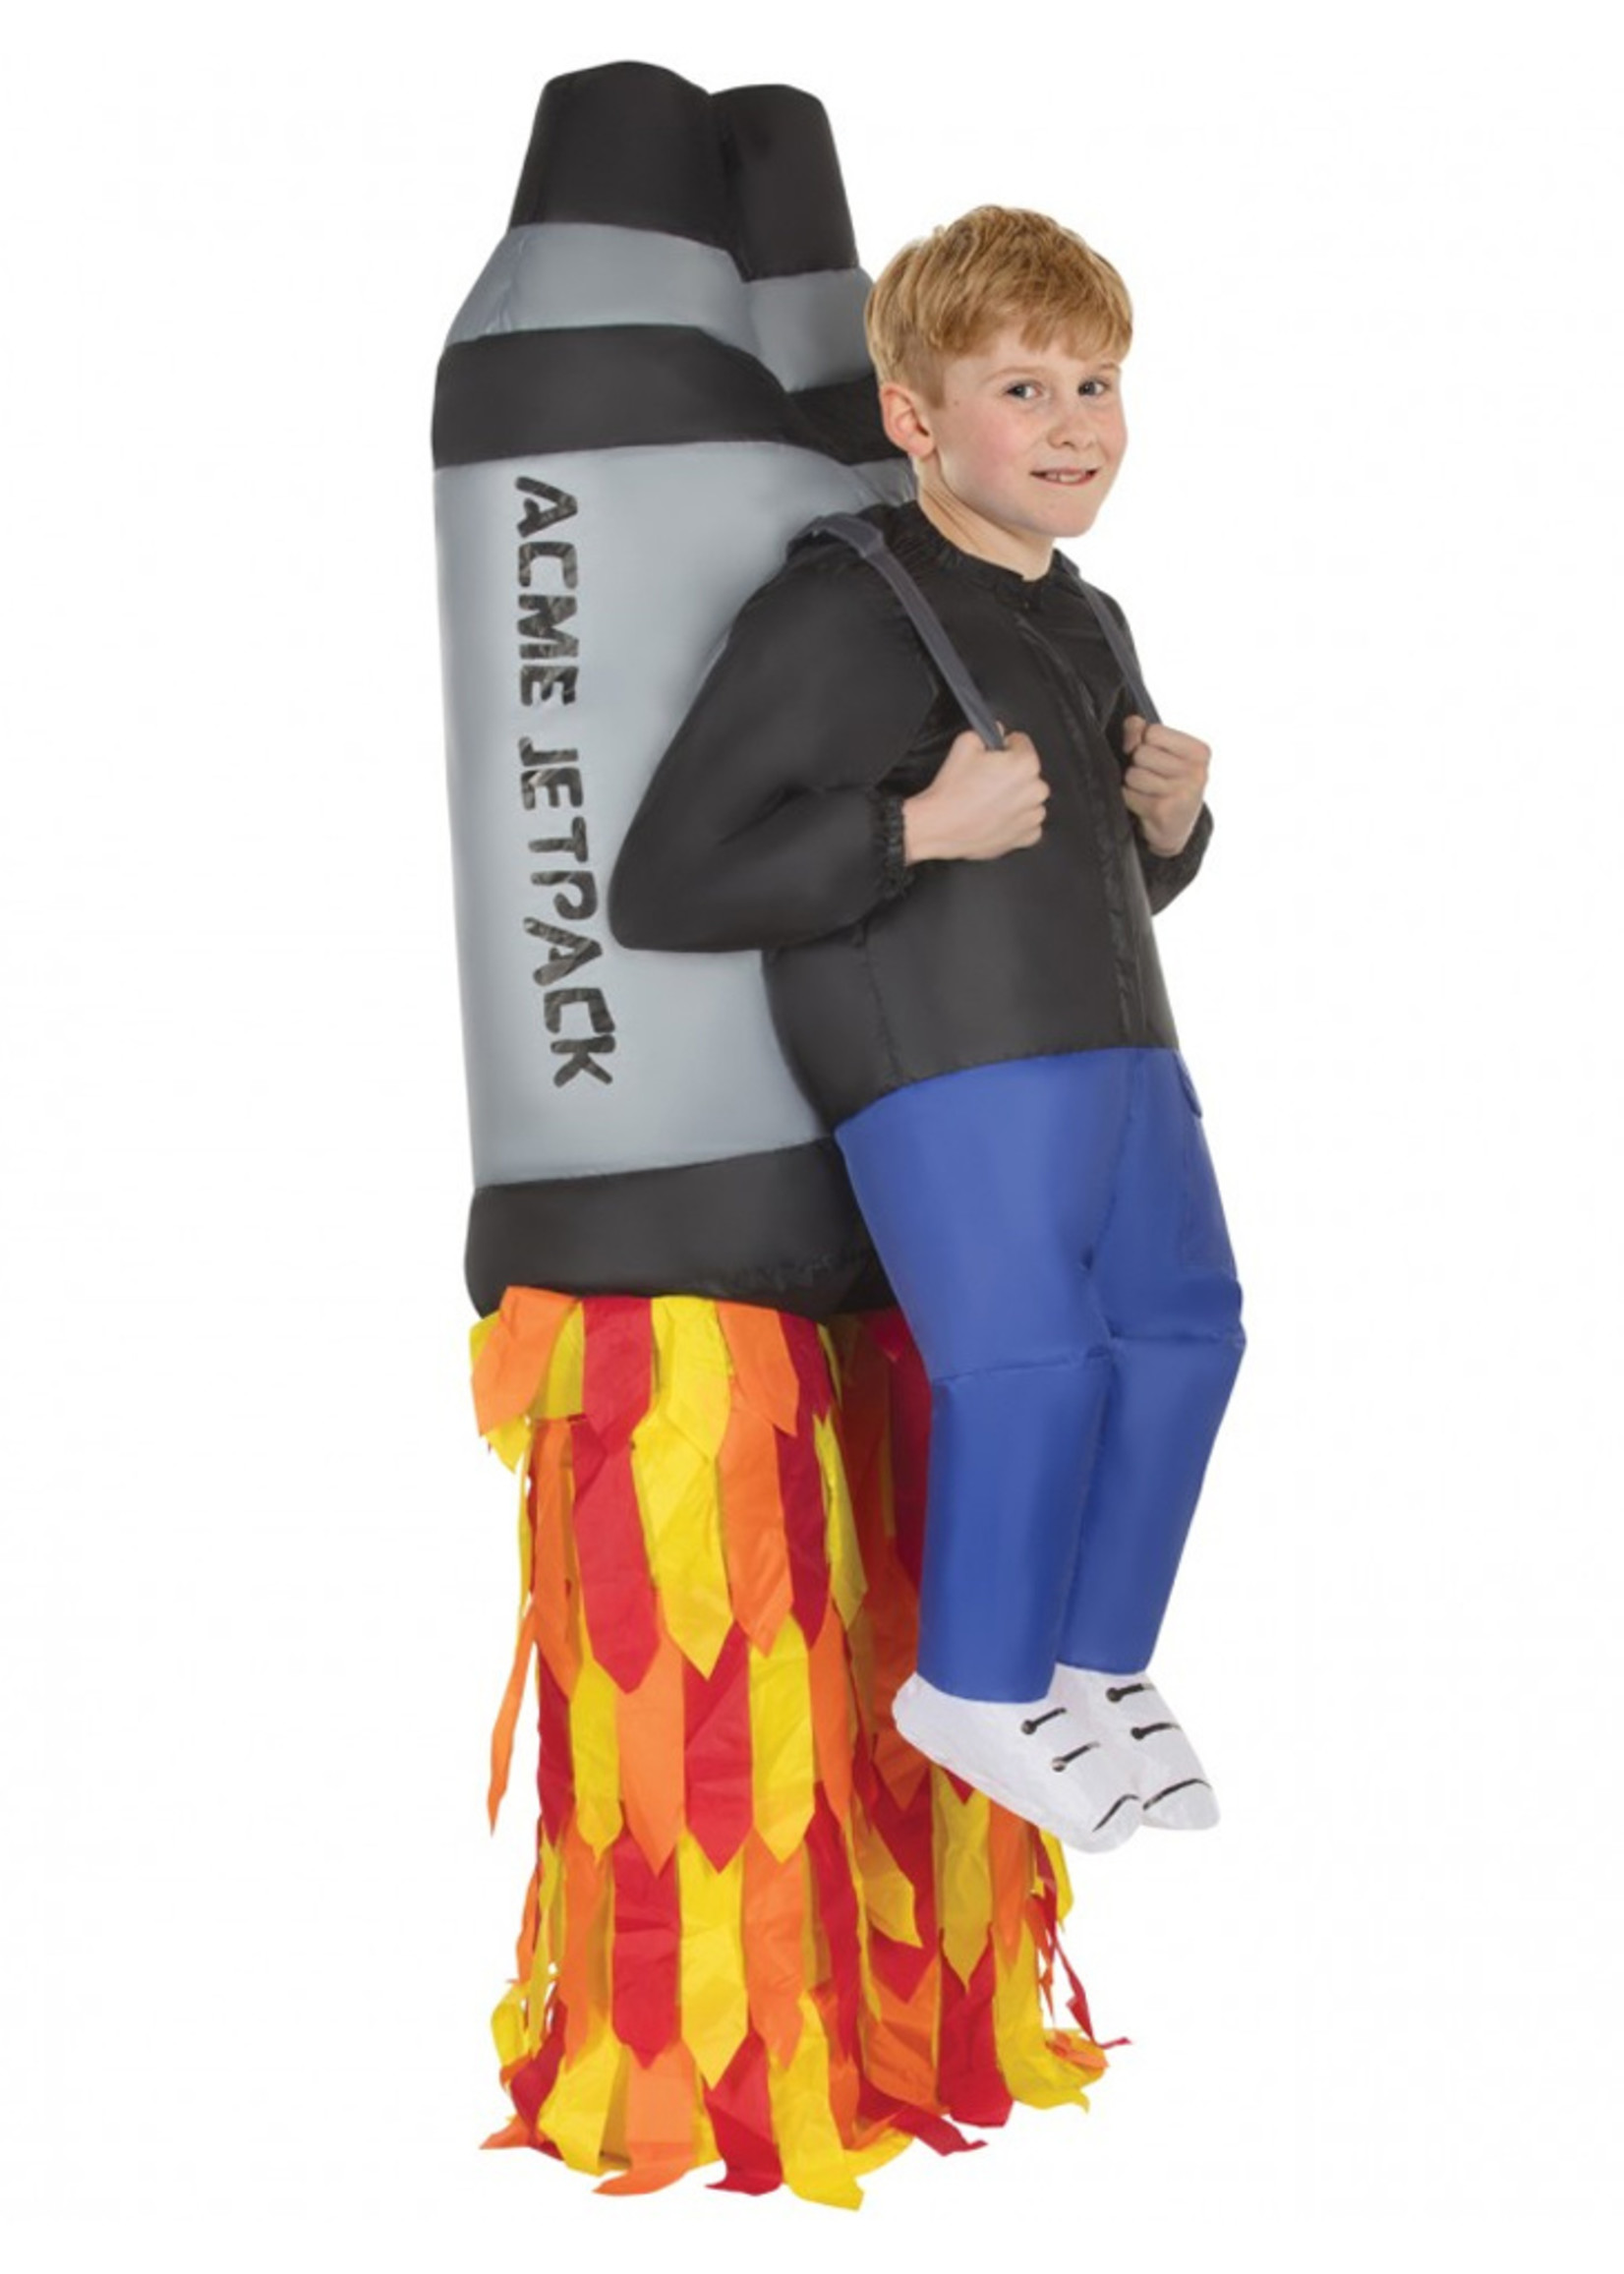 Jet Pack Inflatable - Youth